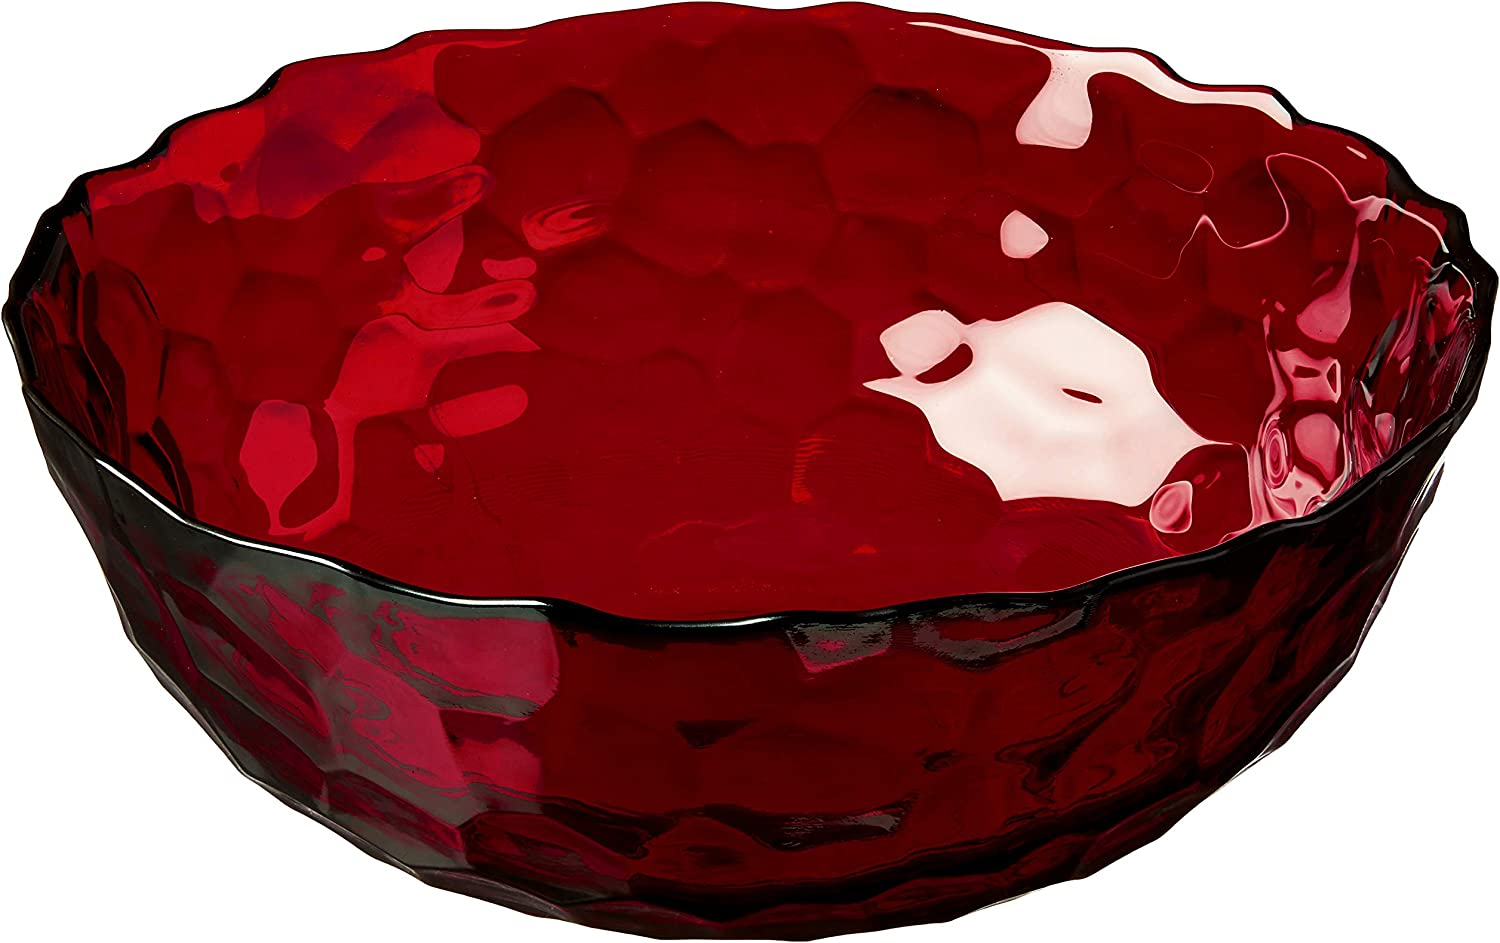 Red Pomegranate Collection 1083-4 Hive Salad Bowl Ruby